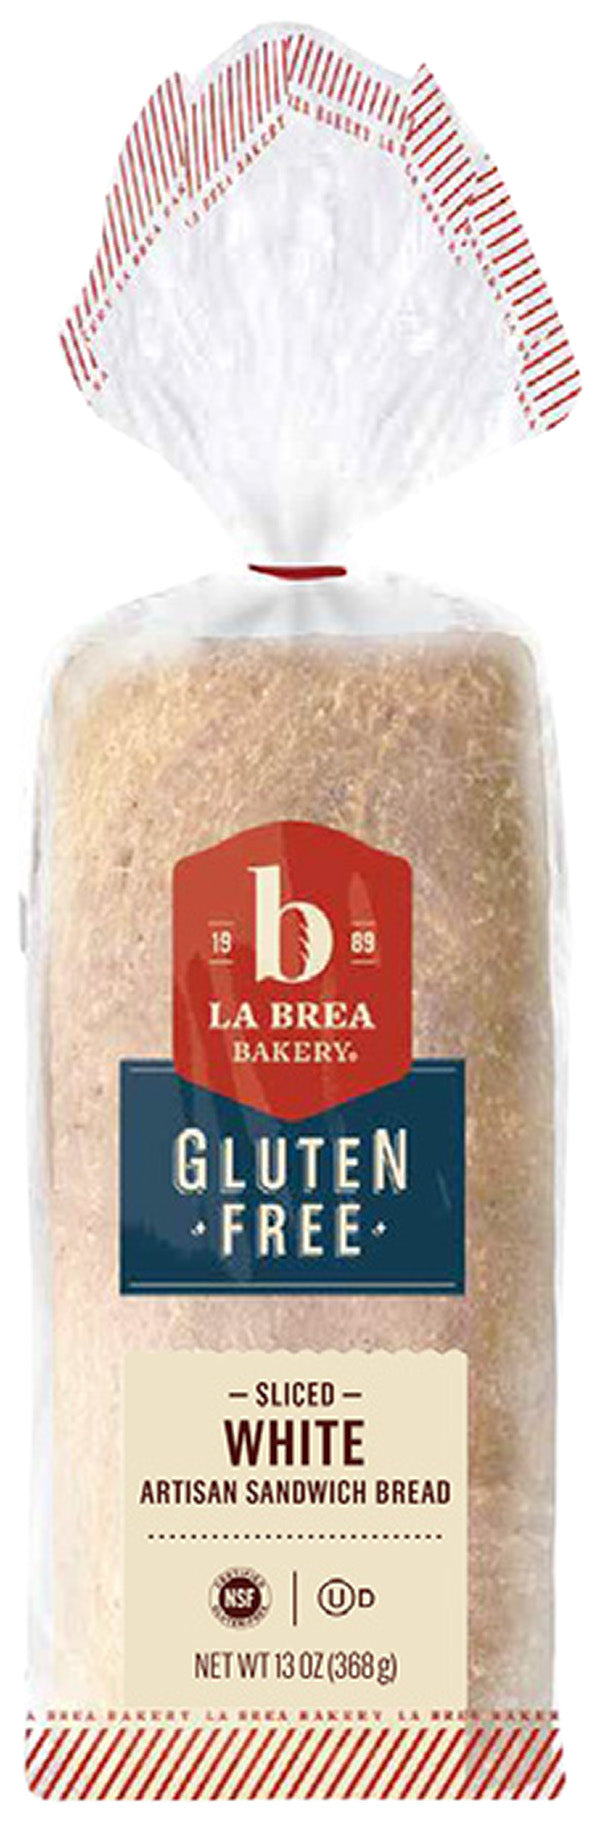 Bread, Gluten Free Artisan White Sliced 13 oz.